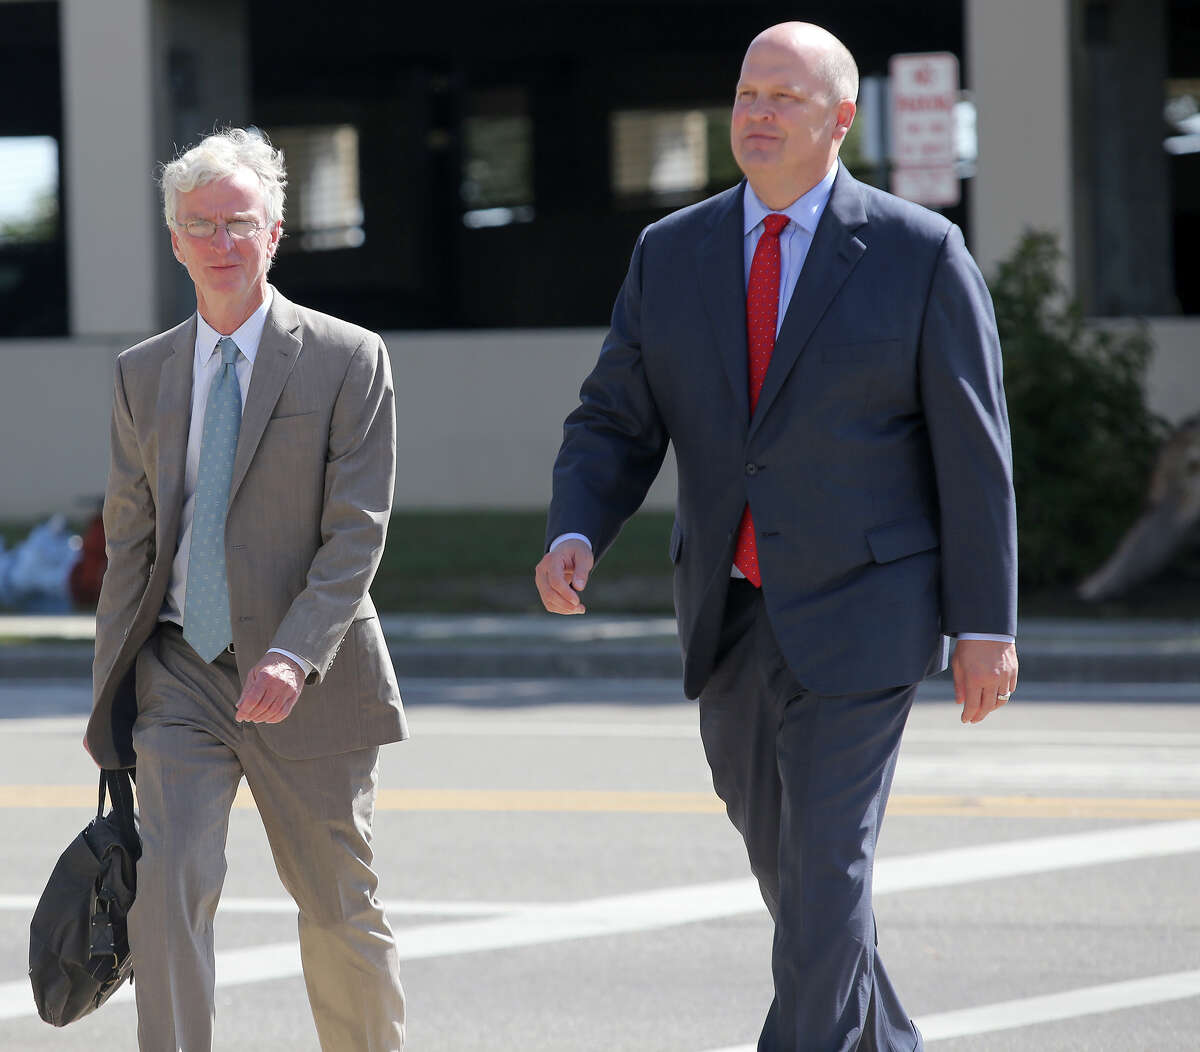 Mikal Watts, right, walks to the federal courthouse in Gulfport, Miss. with his attorney Robert McDuff for an initial appearance before U.S. Magistrate John Gargiulo on Thursday, Oct. 29, 2015. Mikal Watts, a Texas lawyer, his brother and a second employee of his law firm are among seven people accused of faking more than 40,000 damage claims after the BP oil spill in 2010, federal prosecutors said Thursday. (Amanda McCoy/The Sun Herald via AP) LOCAL TELEVISION OUT; MANDATORY CREDIT: MISSISSIPPI PRESS OUT; LOCAL TELEVISION OUT WLOX, LOCAL ONLINE OUT; GULFLIVE.COM OUT